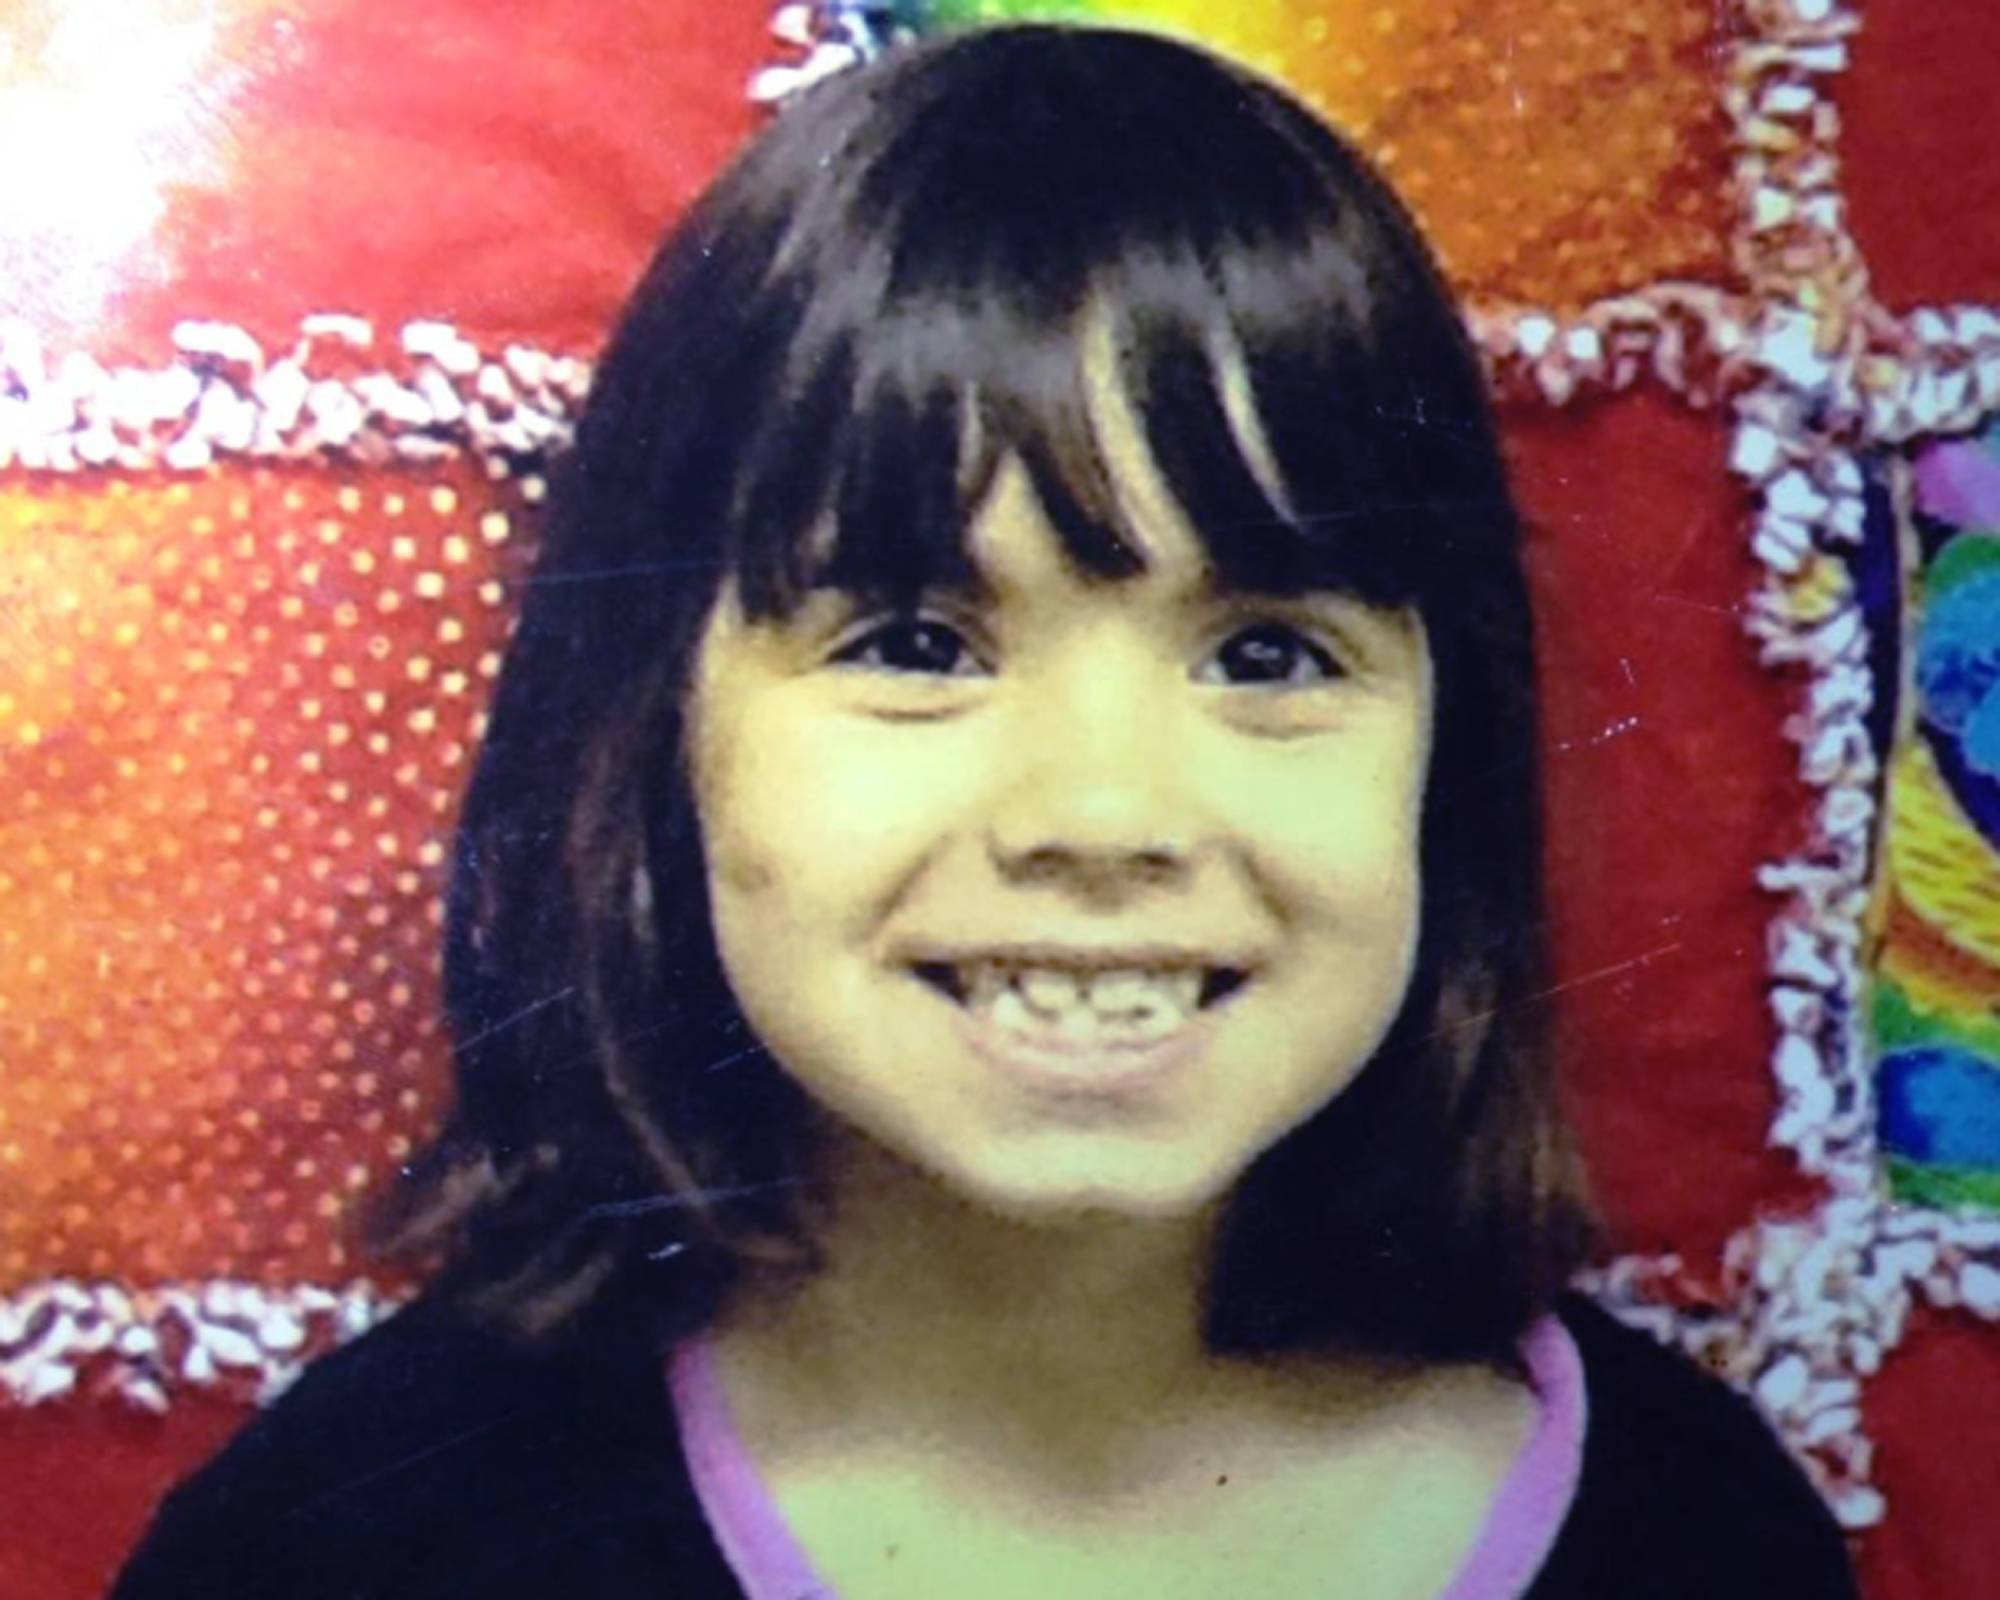 Jenise Paulette Wright, 6, is missing and was last seen Saturday night, Aug. 2, 2014, at her home in east Bremerton, Wash.